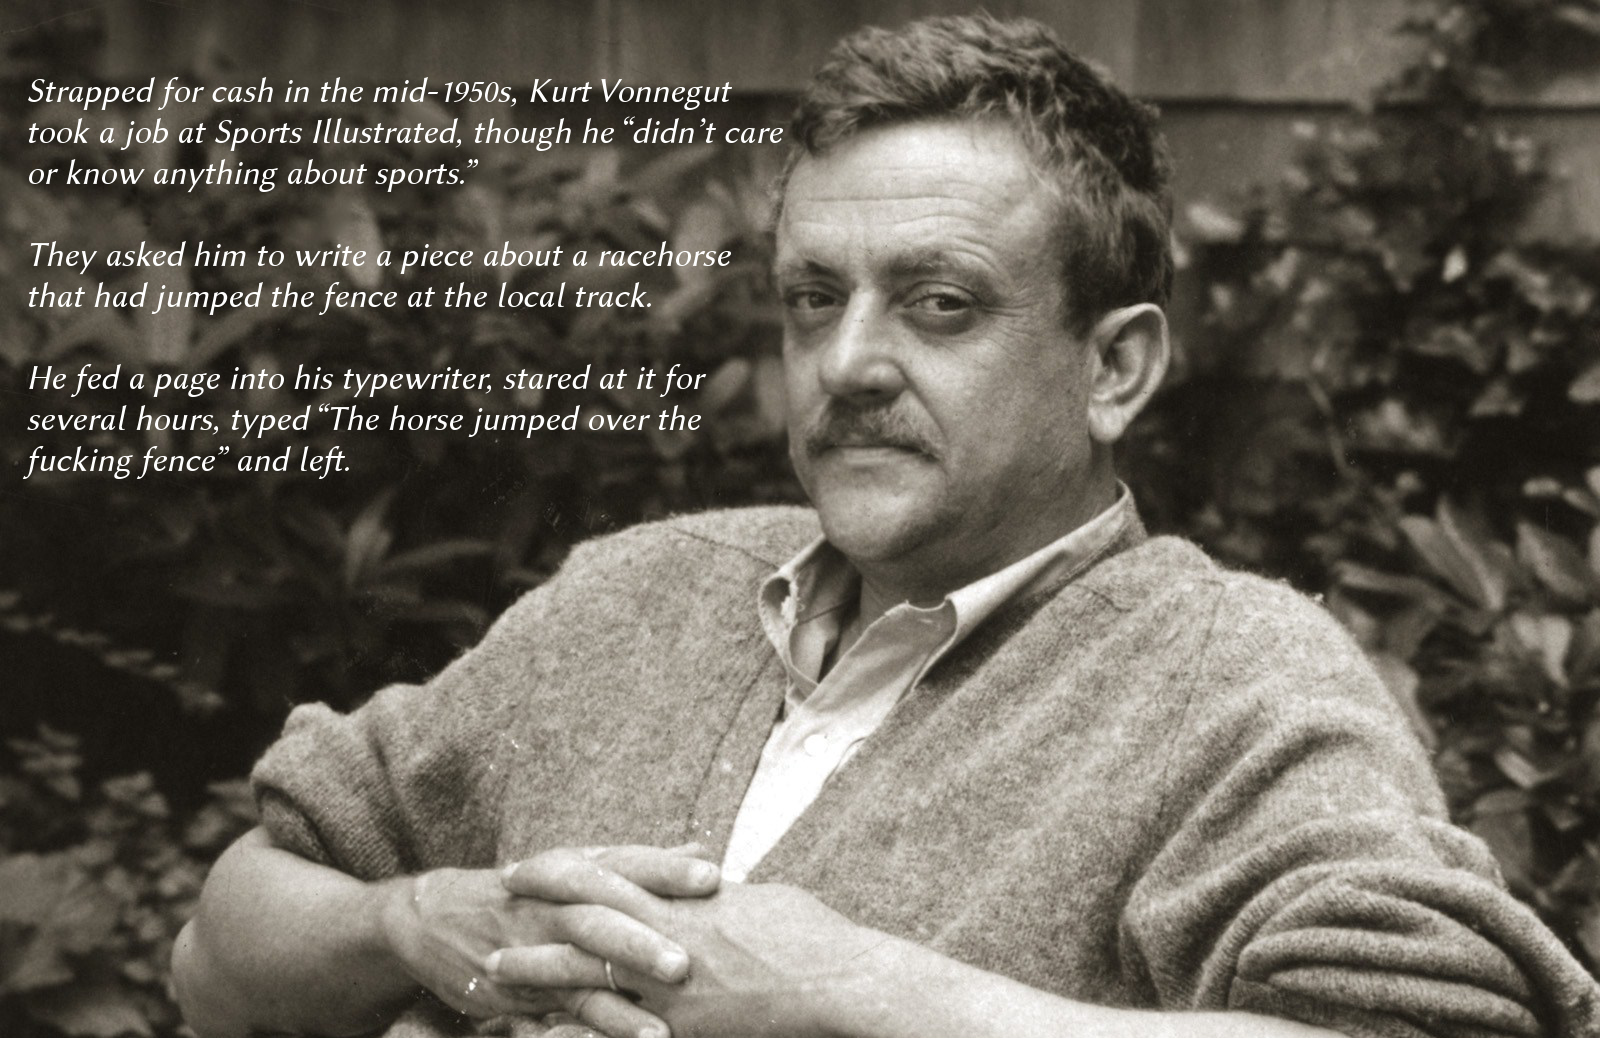 a biography of kurt vonnegut jr an american writer Kurt vonnegut jr was an extremely popular american writer of humor, science fiction novels and short stories his novels are known for their dark humor and playful use of science fiction, as well as for their serious moral vision and cutting social commentary kurt vonnegut was one of the most influential american writers and novelists of the.